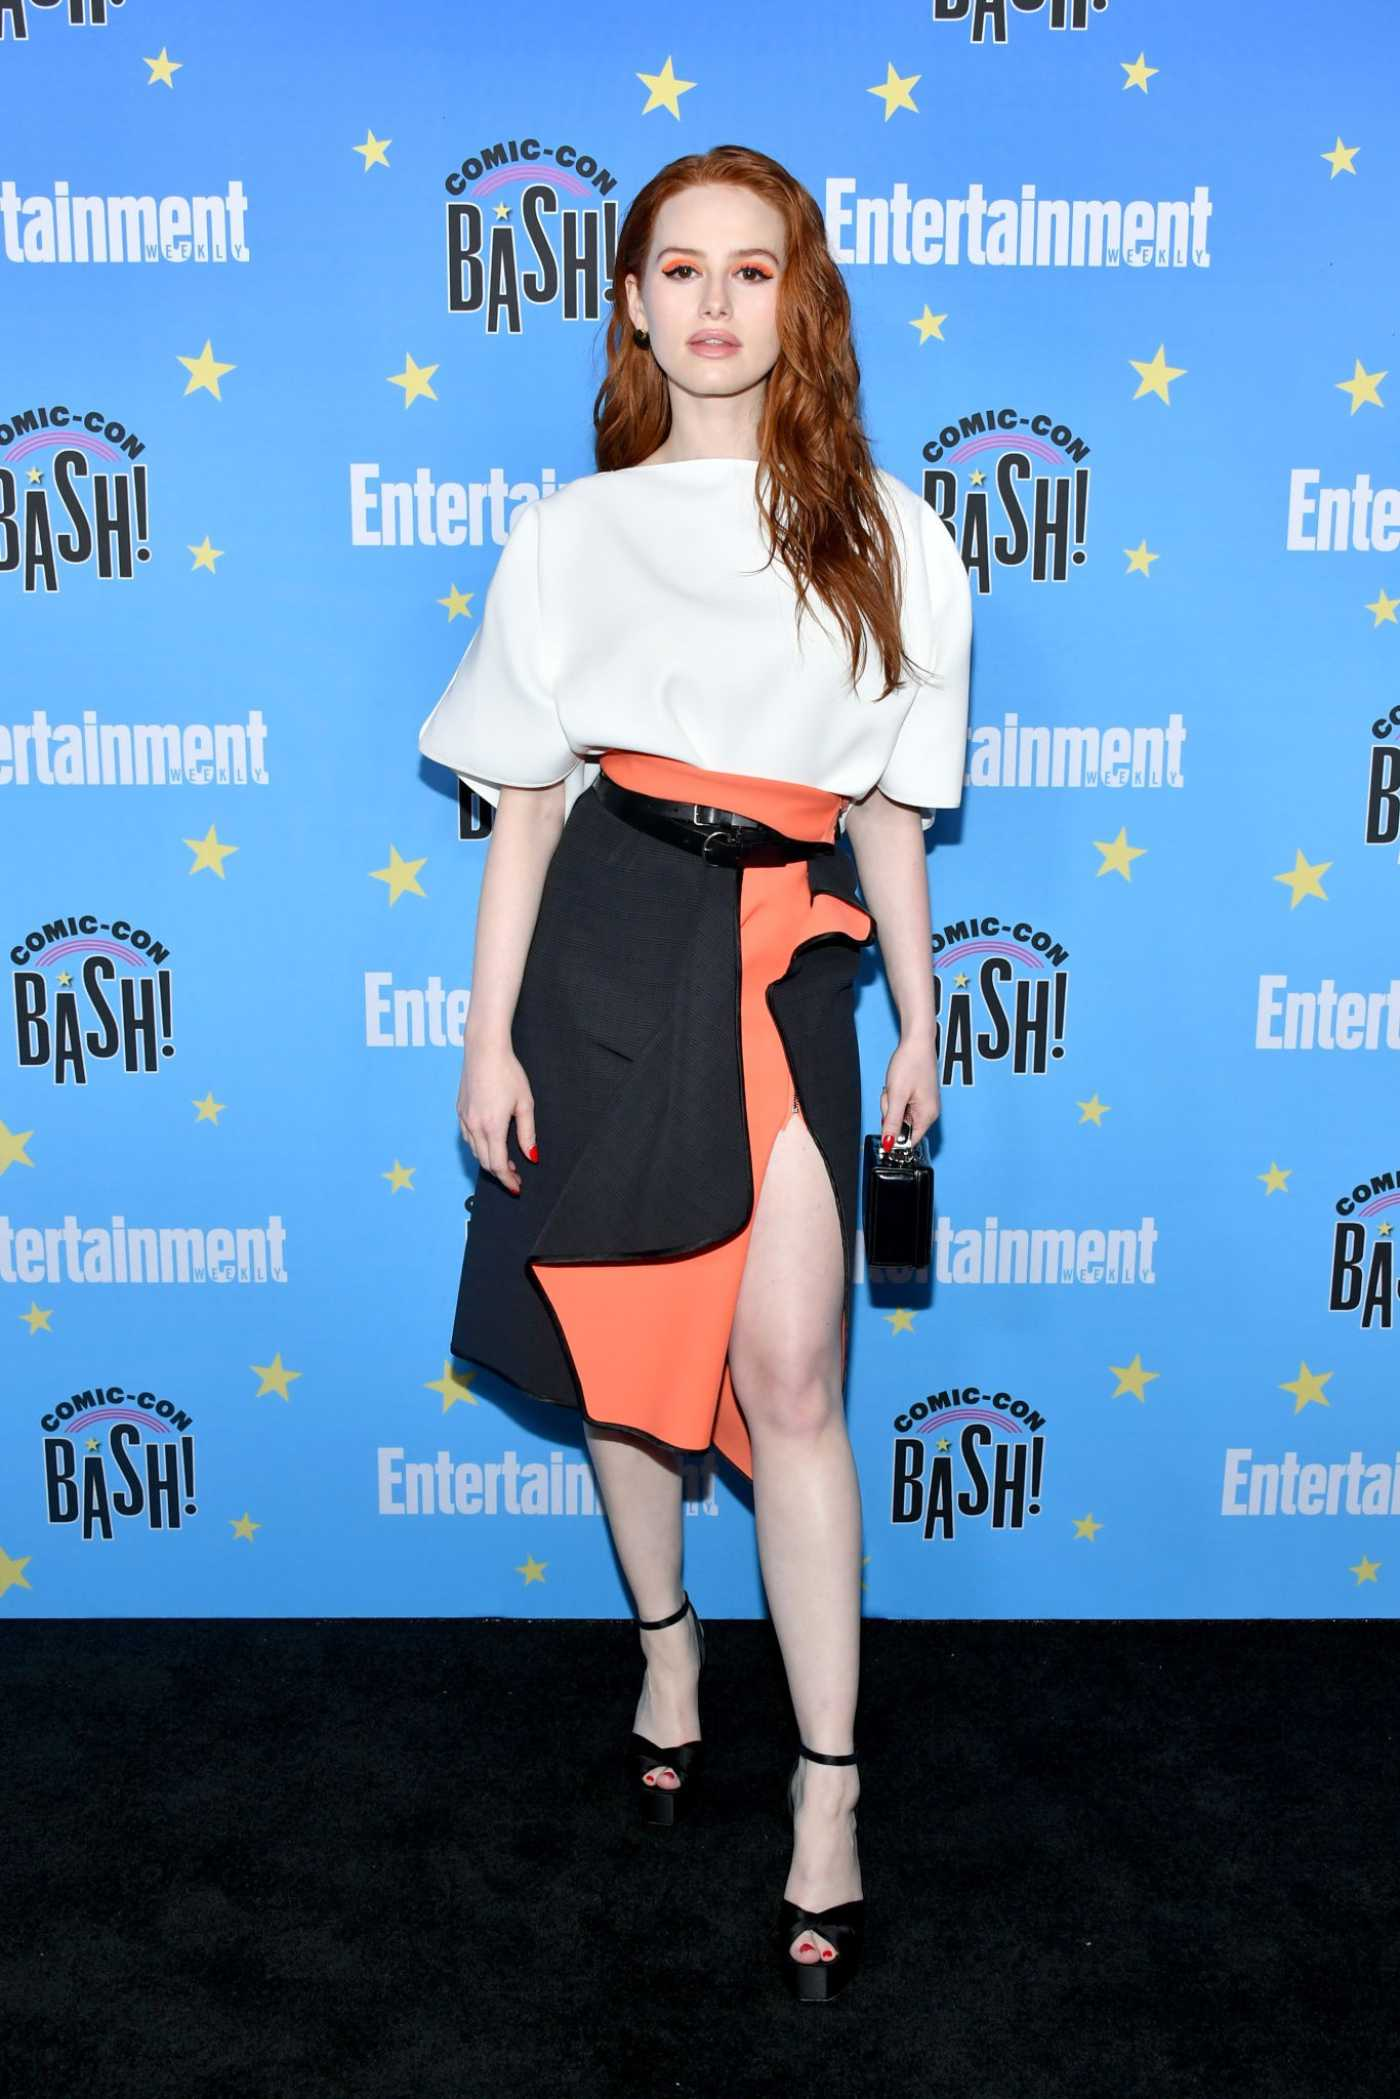 Madelaine Petsch Attends Entertainment Weekly's Comic-Con Bash in San Diego 07/20/2019